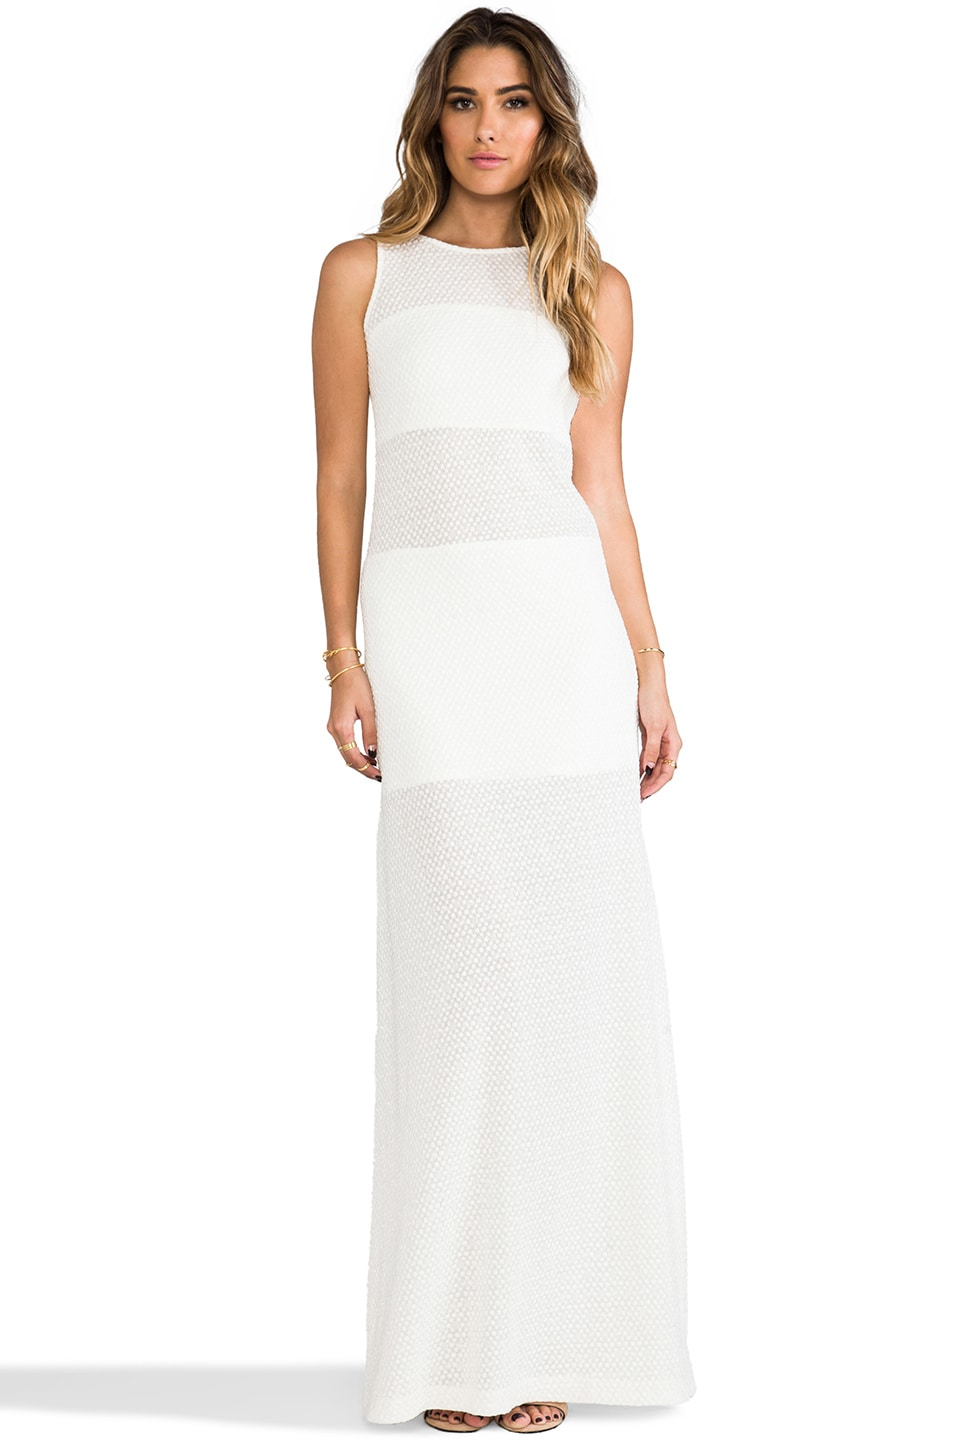 Alexis Mizuri Maxi Dress in White Pebble